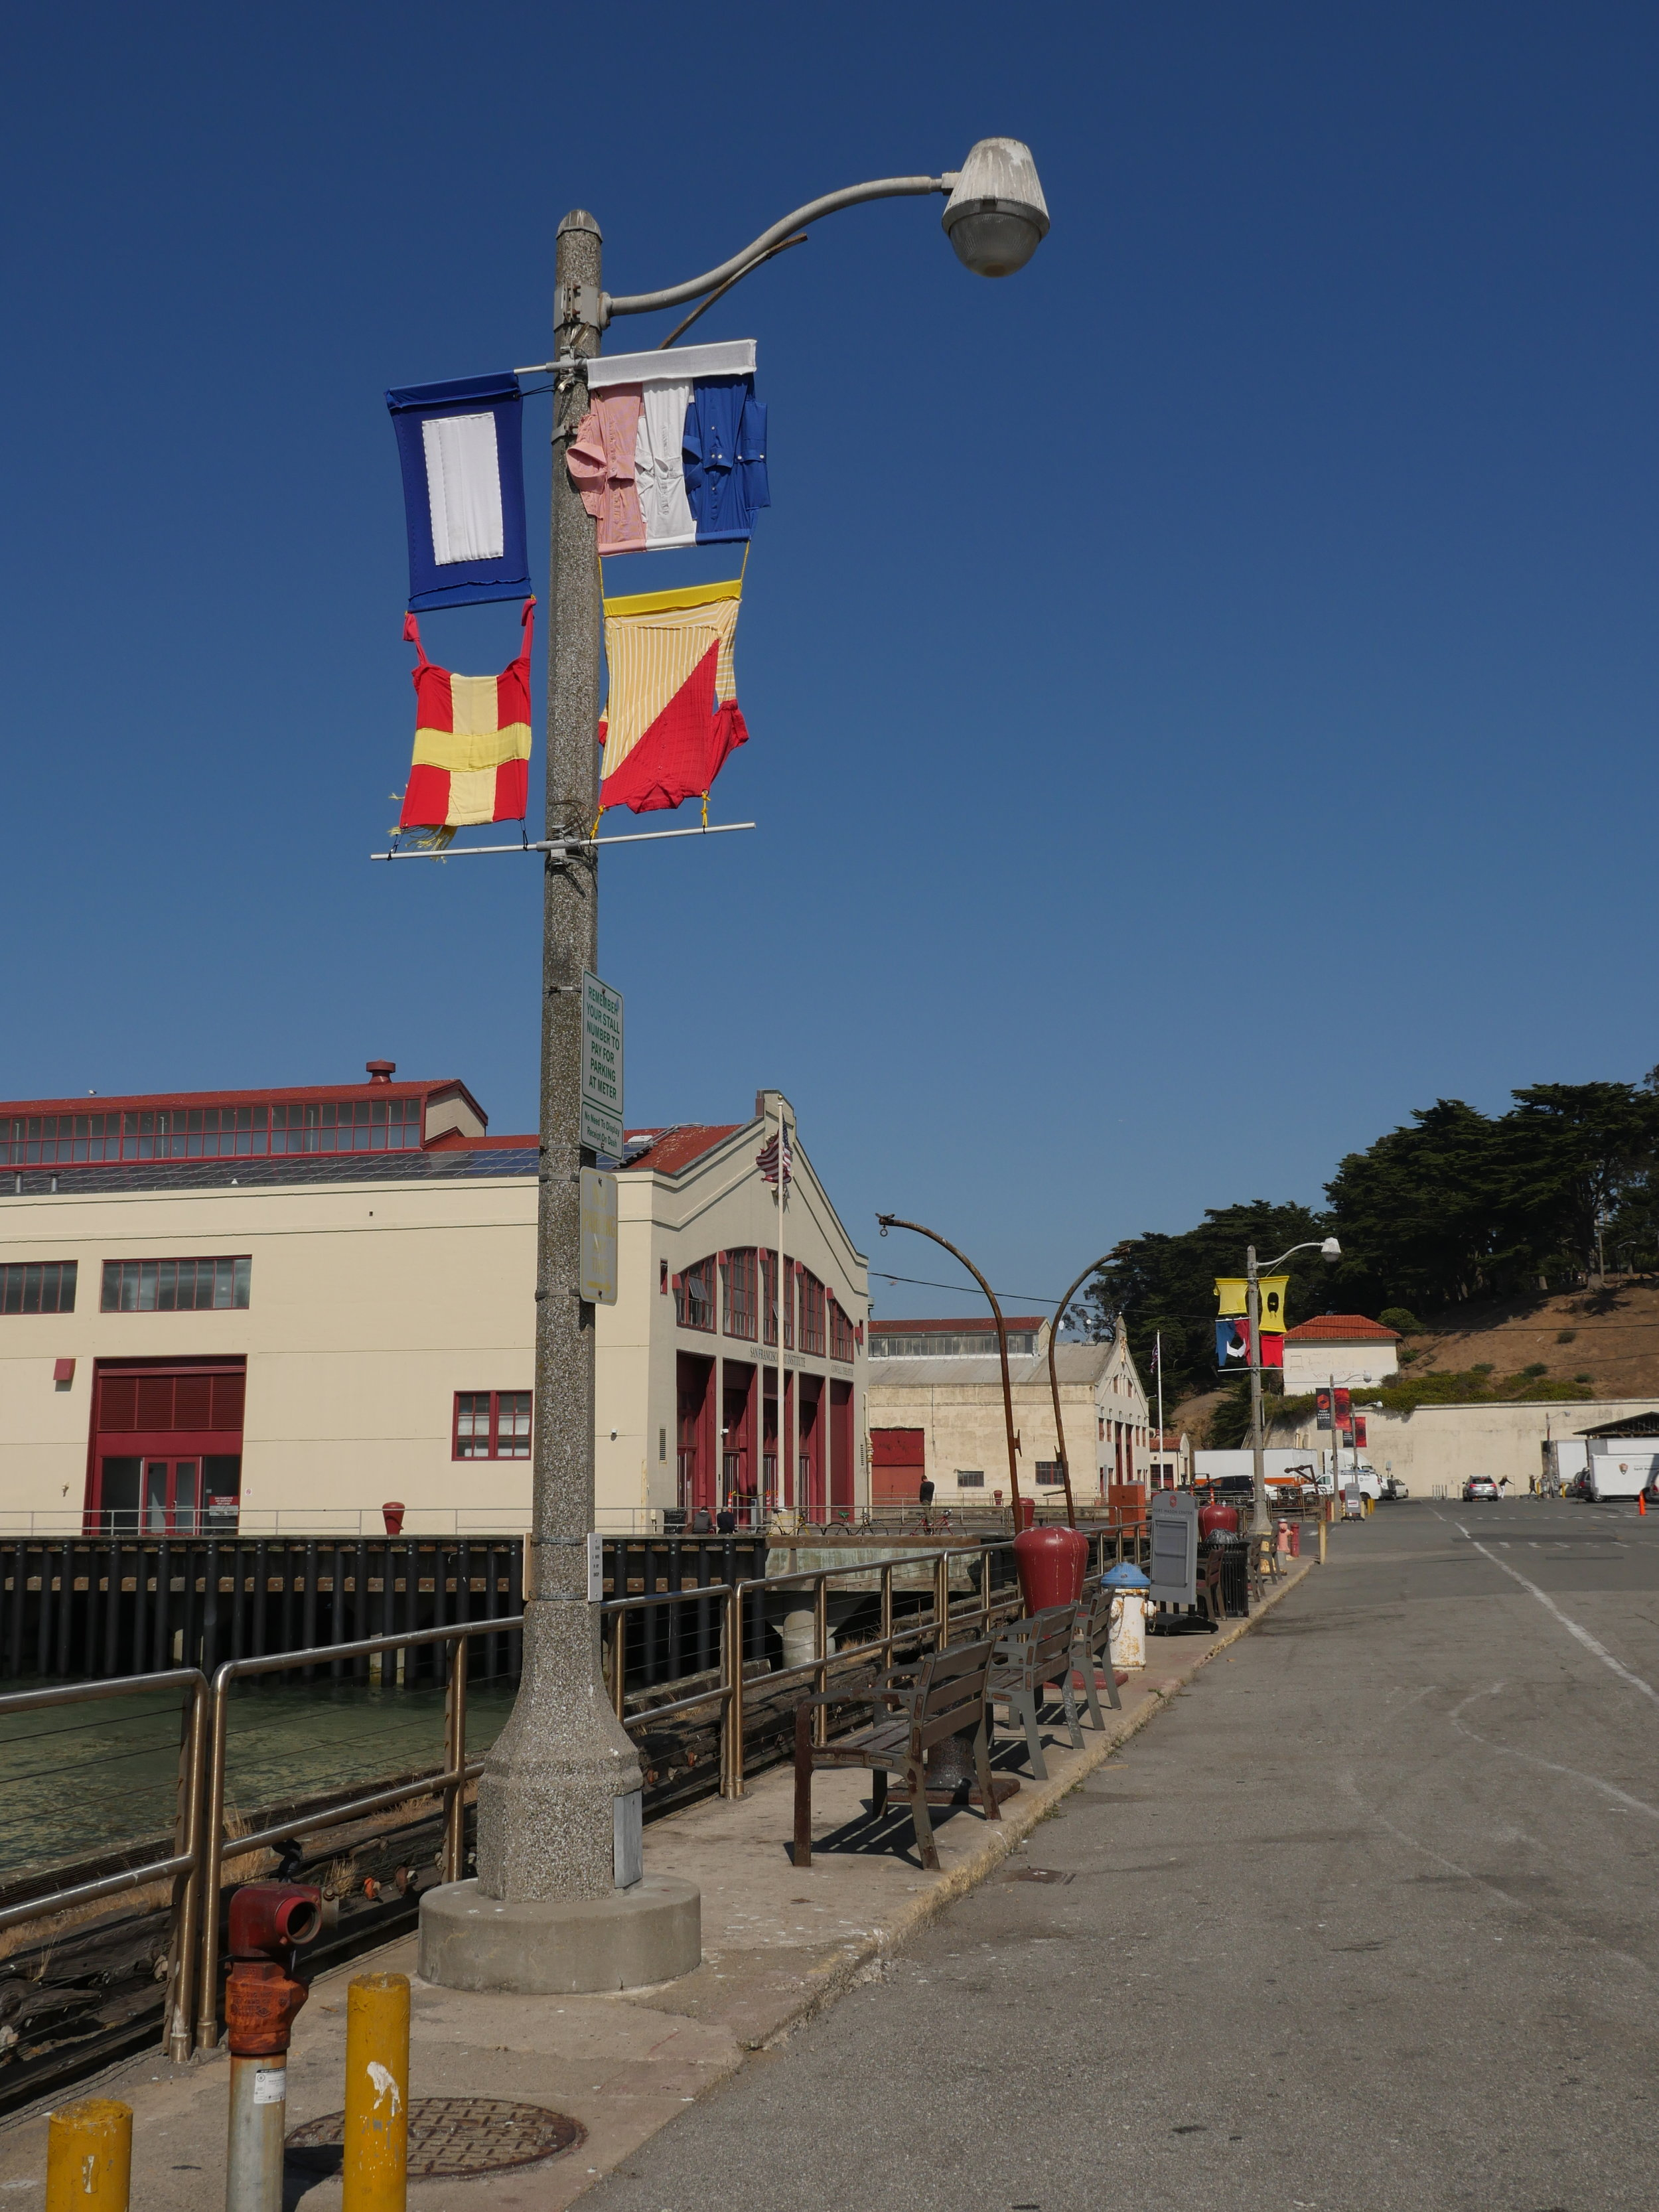 Hand-sewn signal flags installed on lampposts overlooking the bay